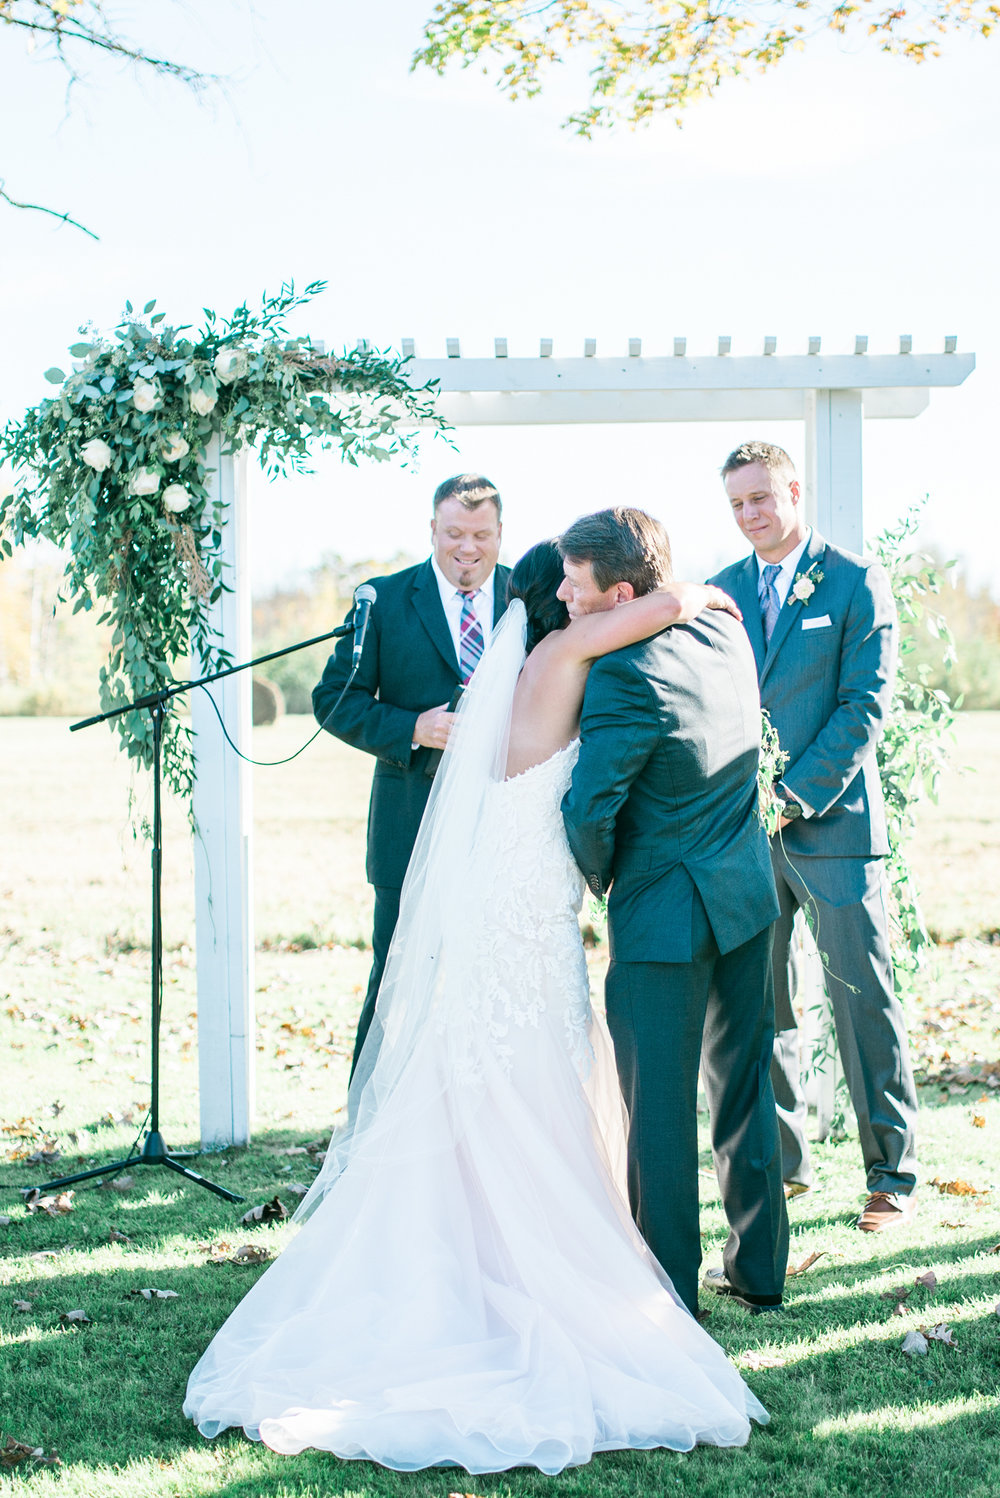 the bee's knees floral design decor minneapolis wedding flowers florist bridal florals brainerd lakes minneapols st paul twin cities st cloud duluth mankato mn florist whimsical florals wedding in the country barn wedding blush and greenery bride bouquet garden inspired loose flowing silk and willow ribbon tablescape table centerpiece moss blush flowers outdoor wedding